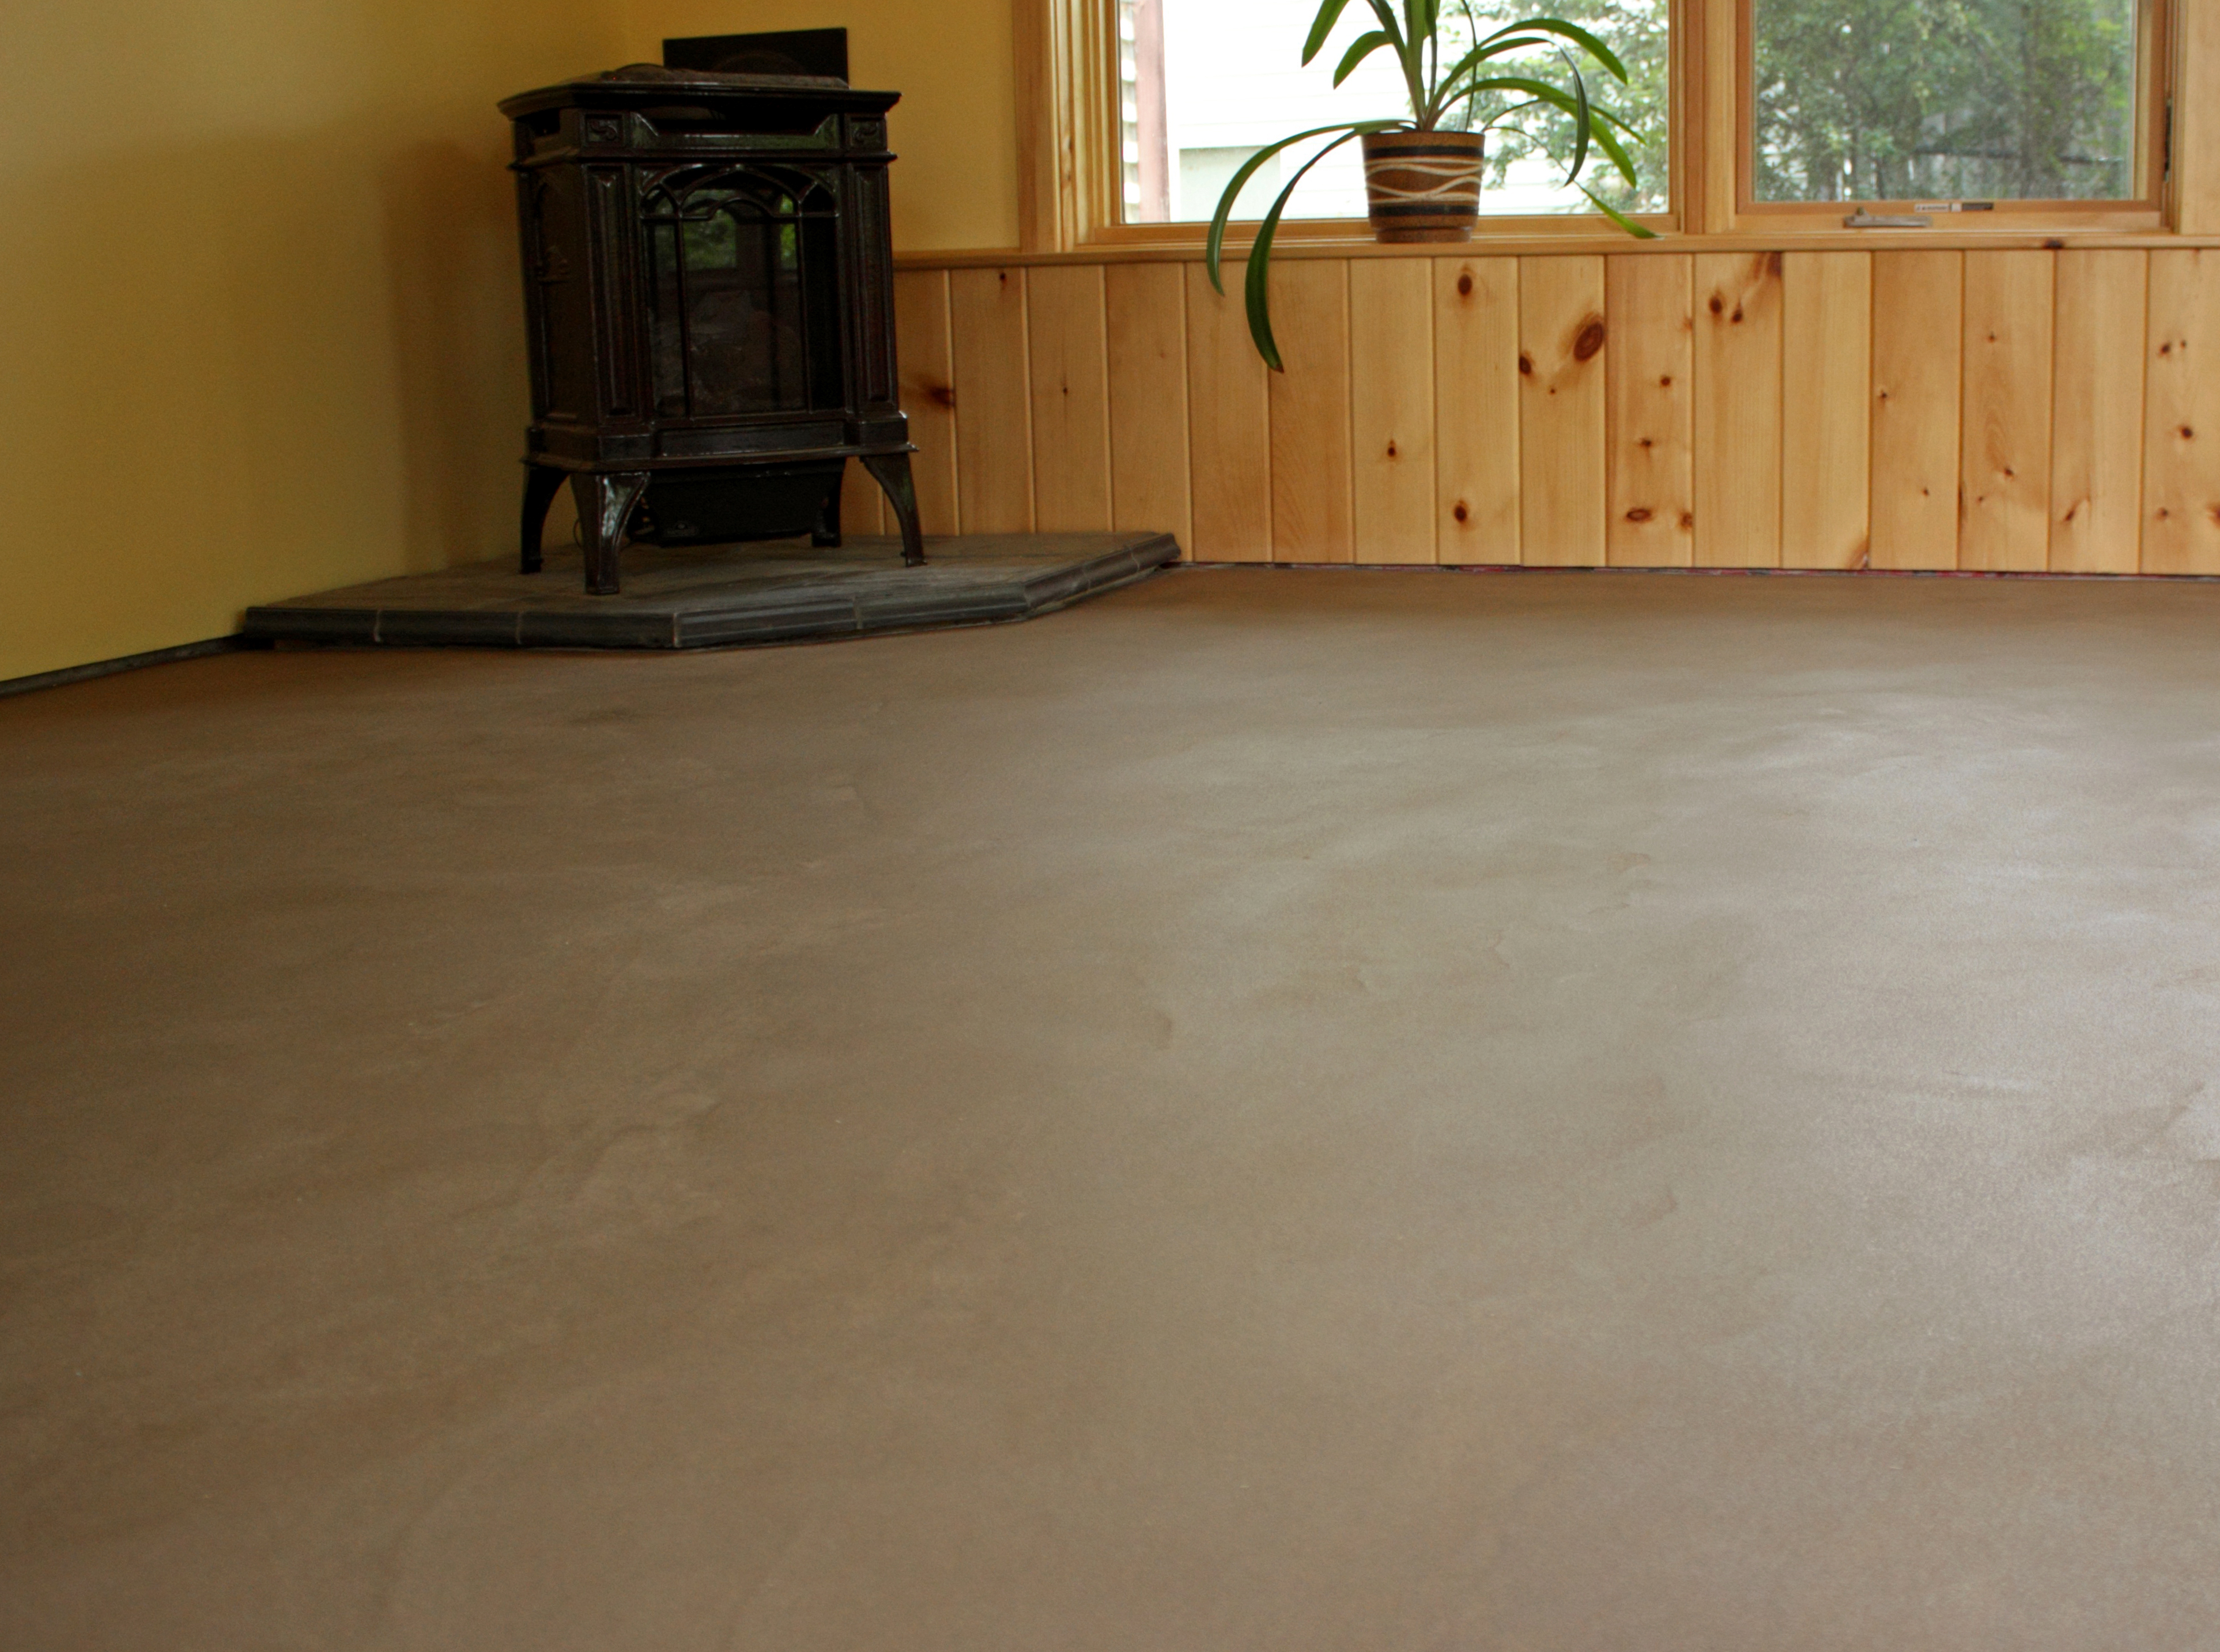 Earth floors ontario natural plasters for At floor or on floor